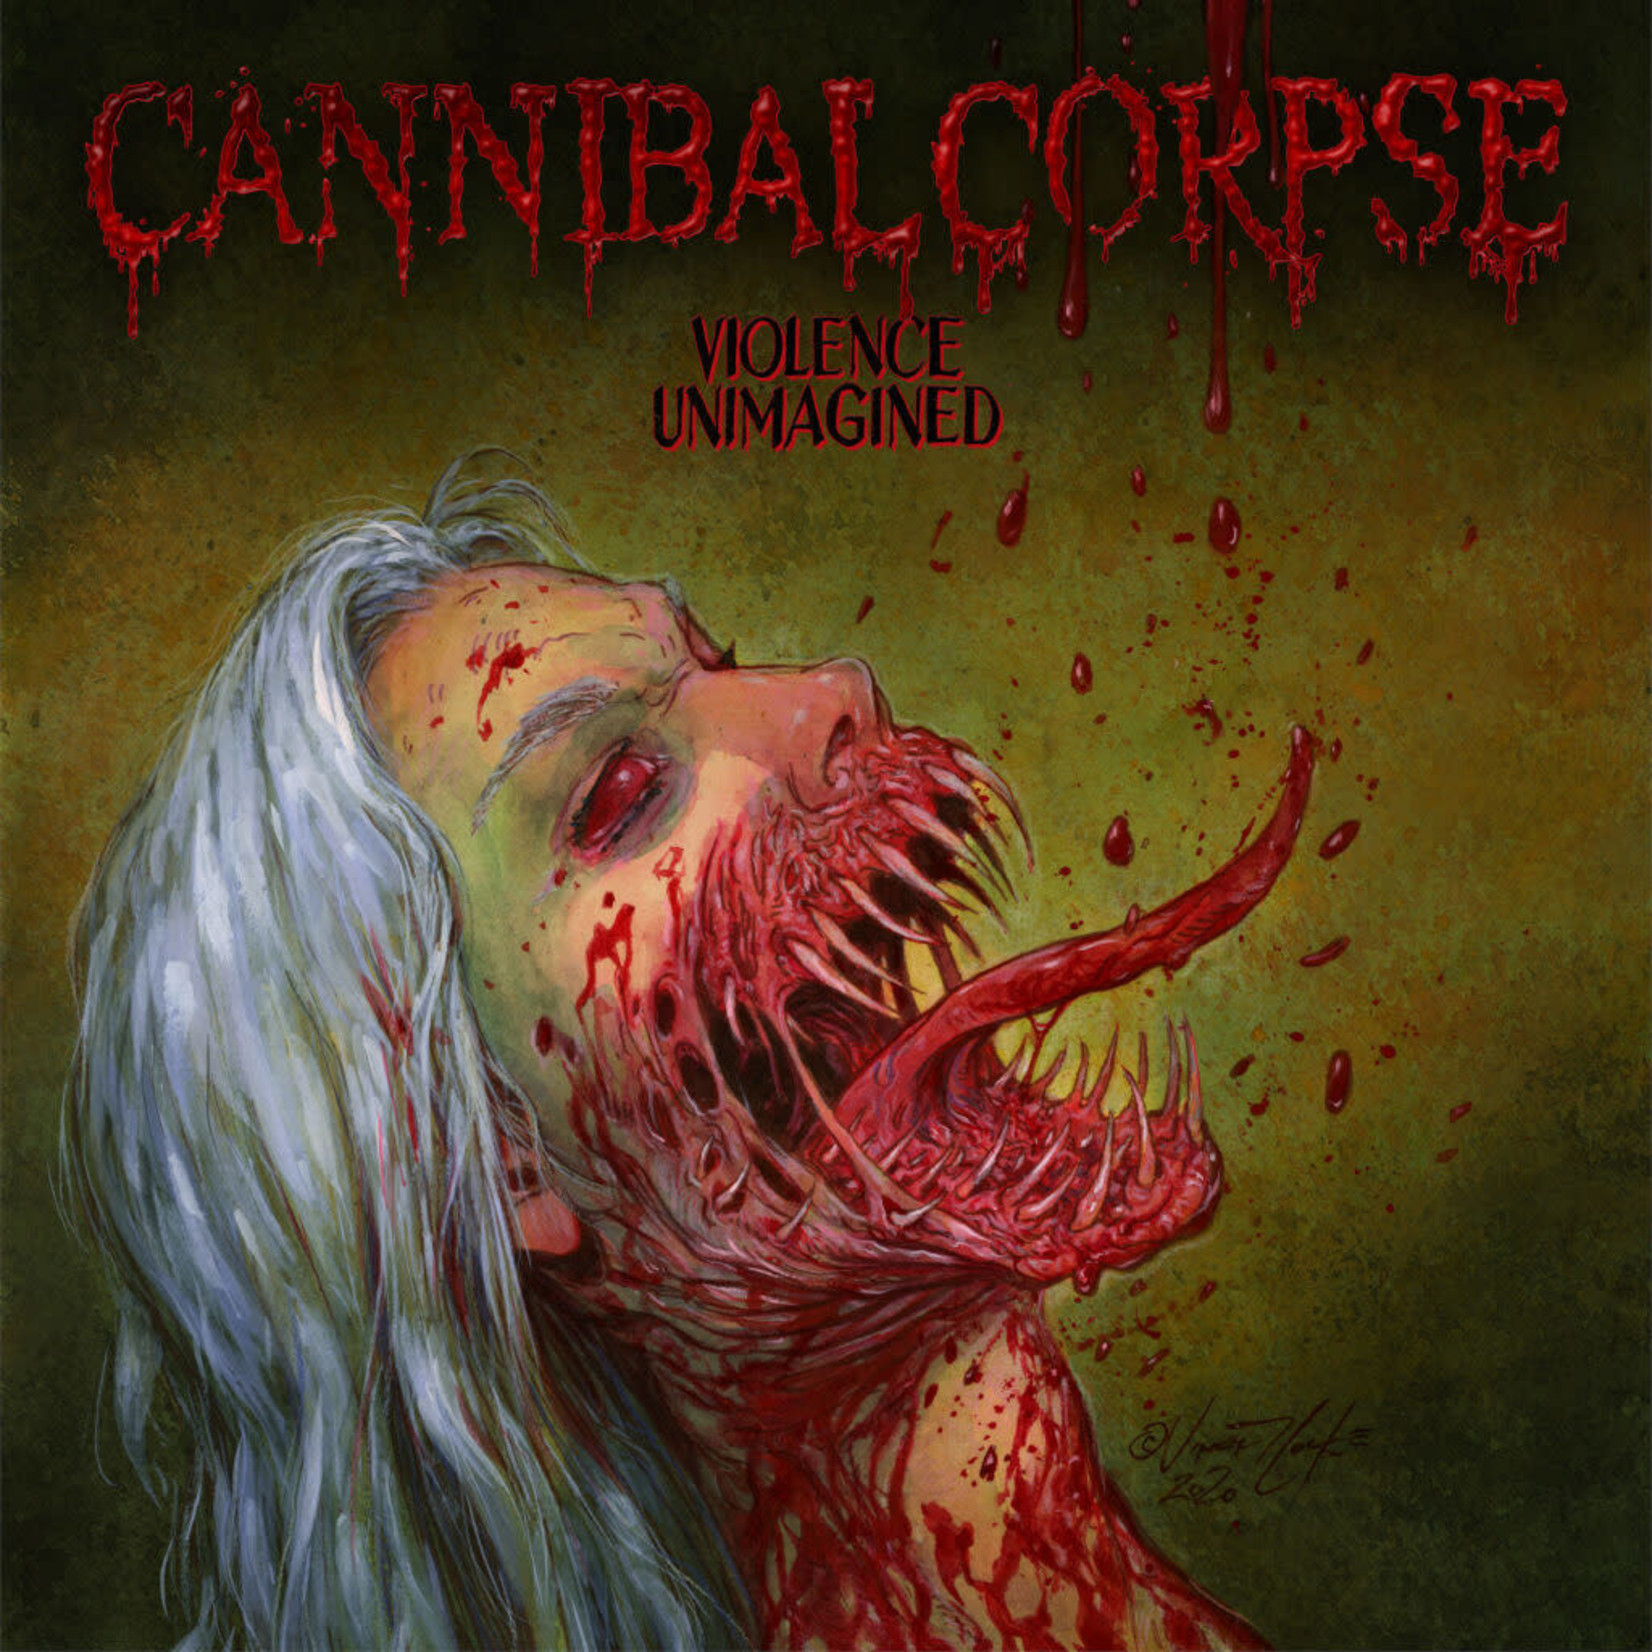 [New] Cannibal Corpse: Violence Unimagined